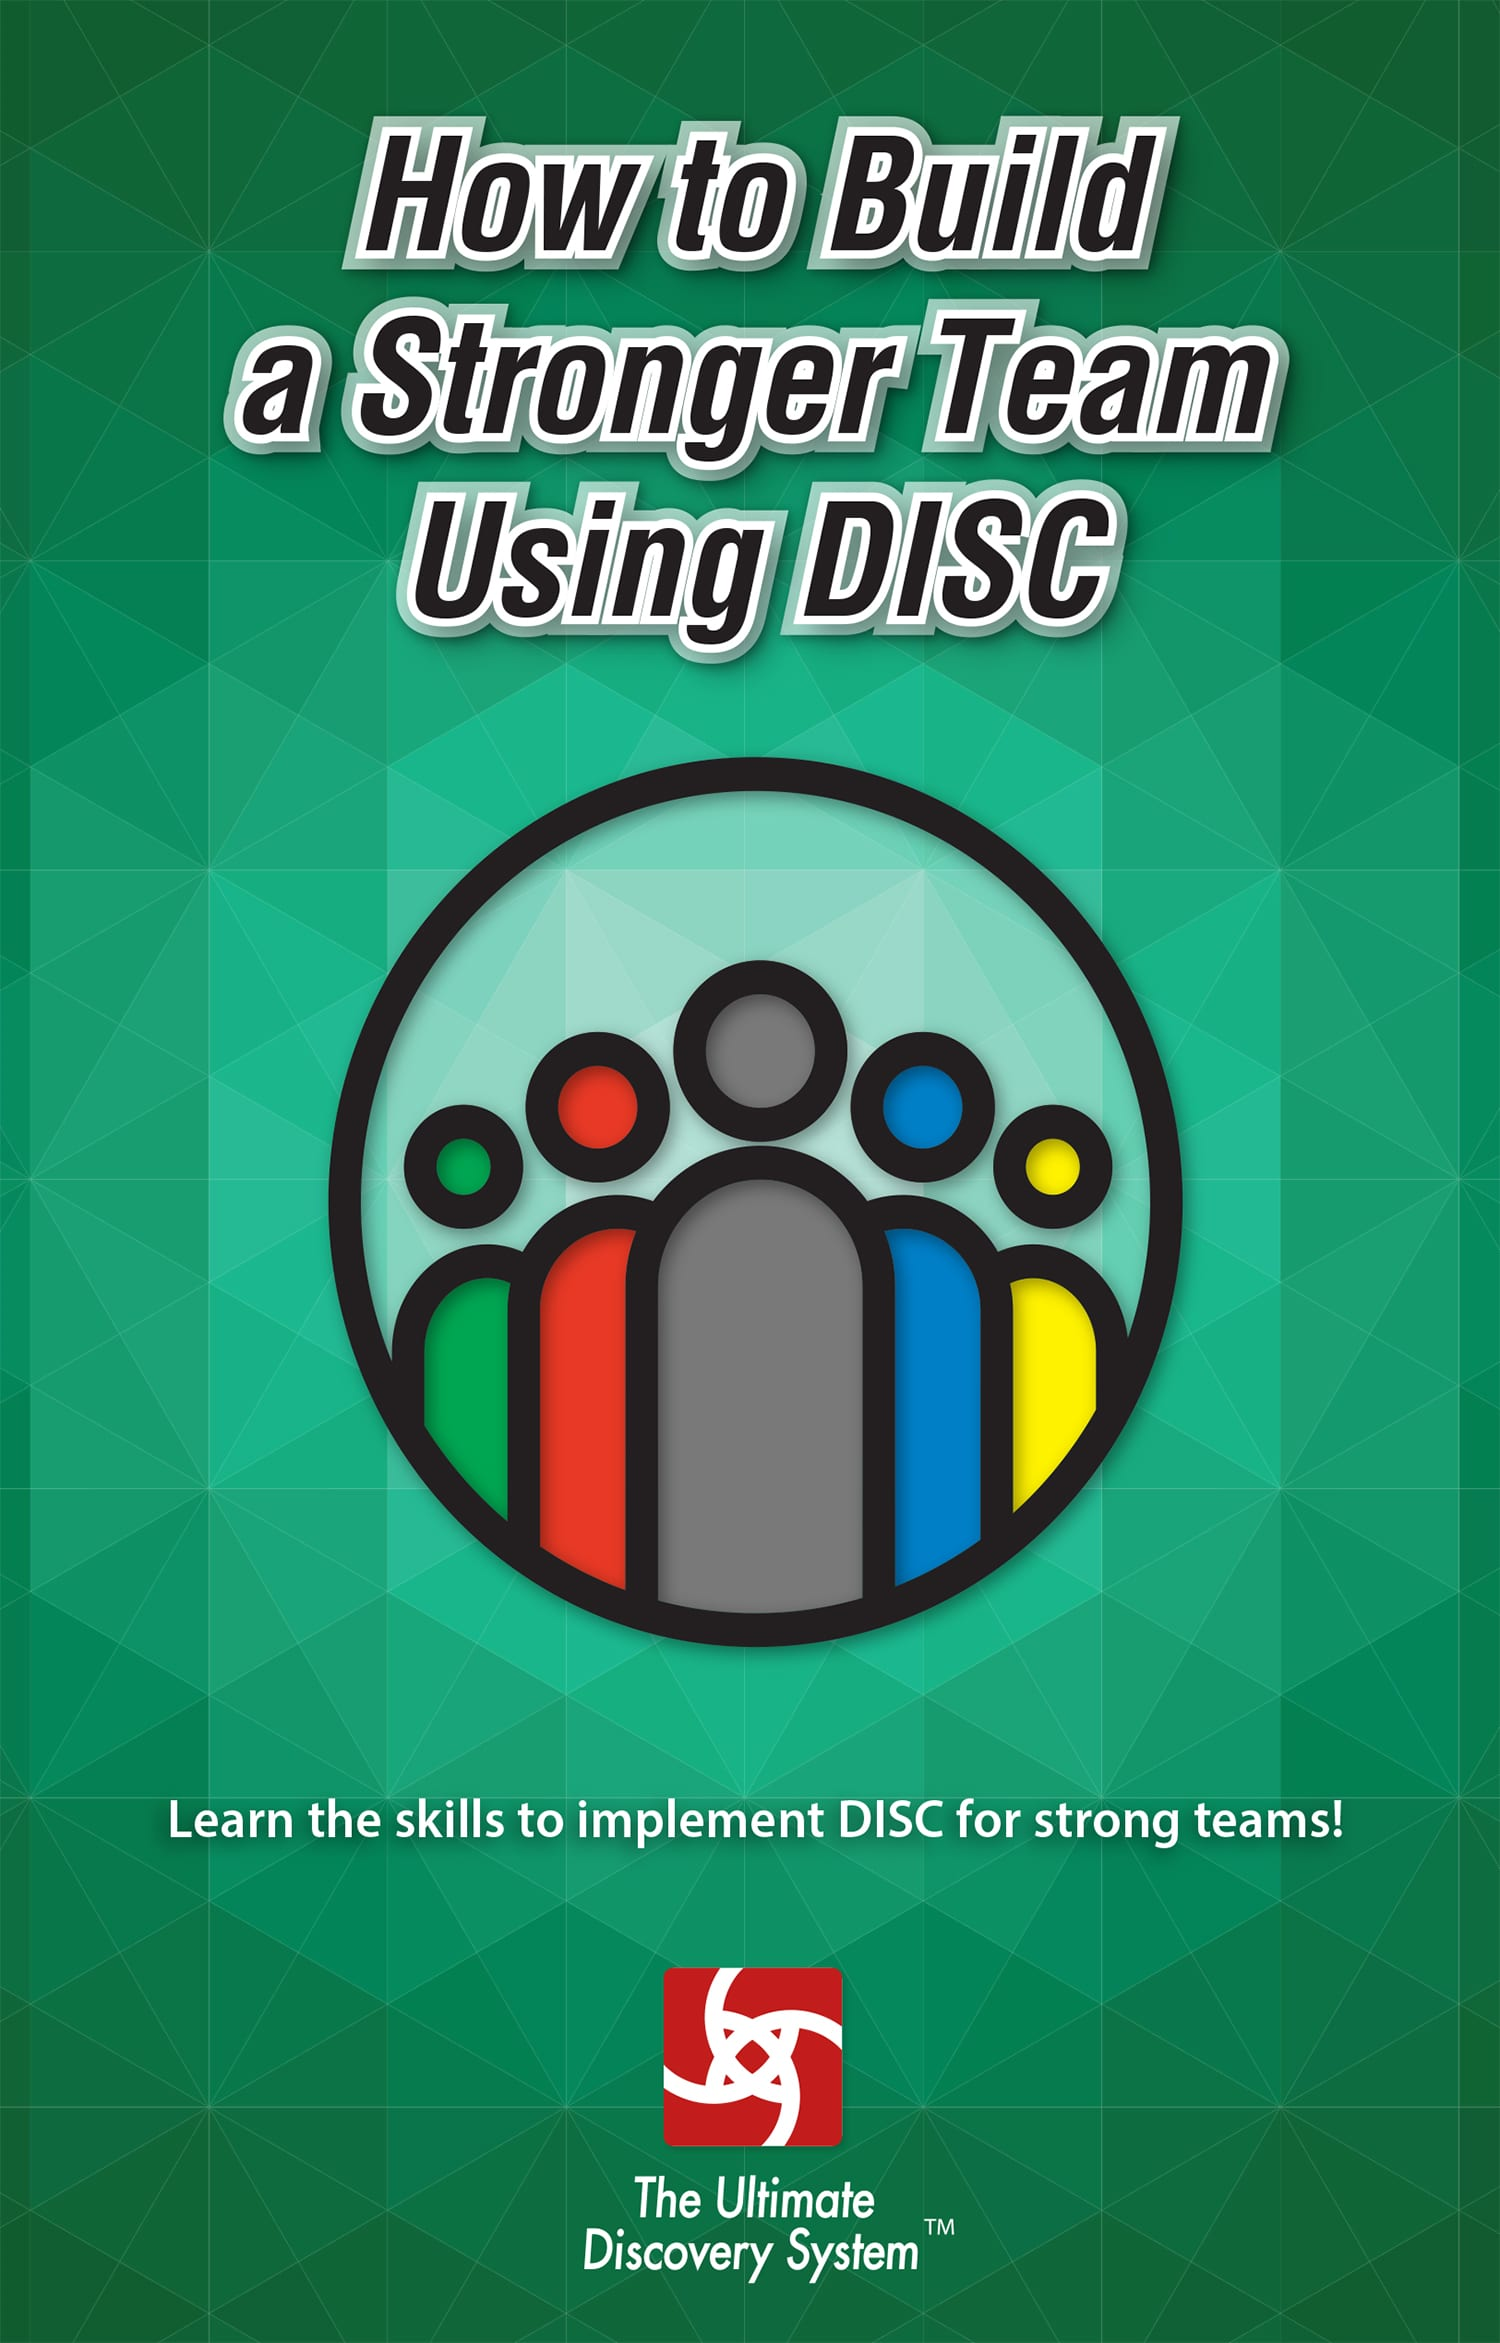 How to Build a Stronger Team Using DISC